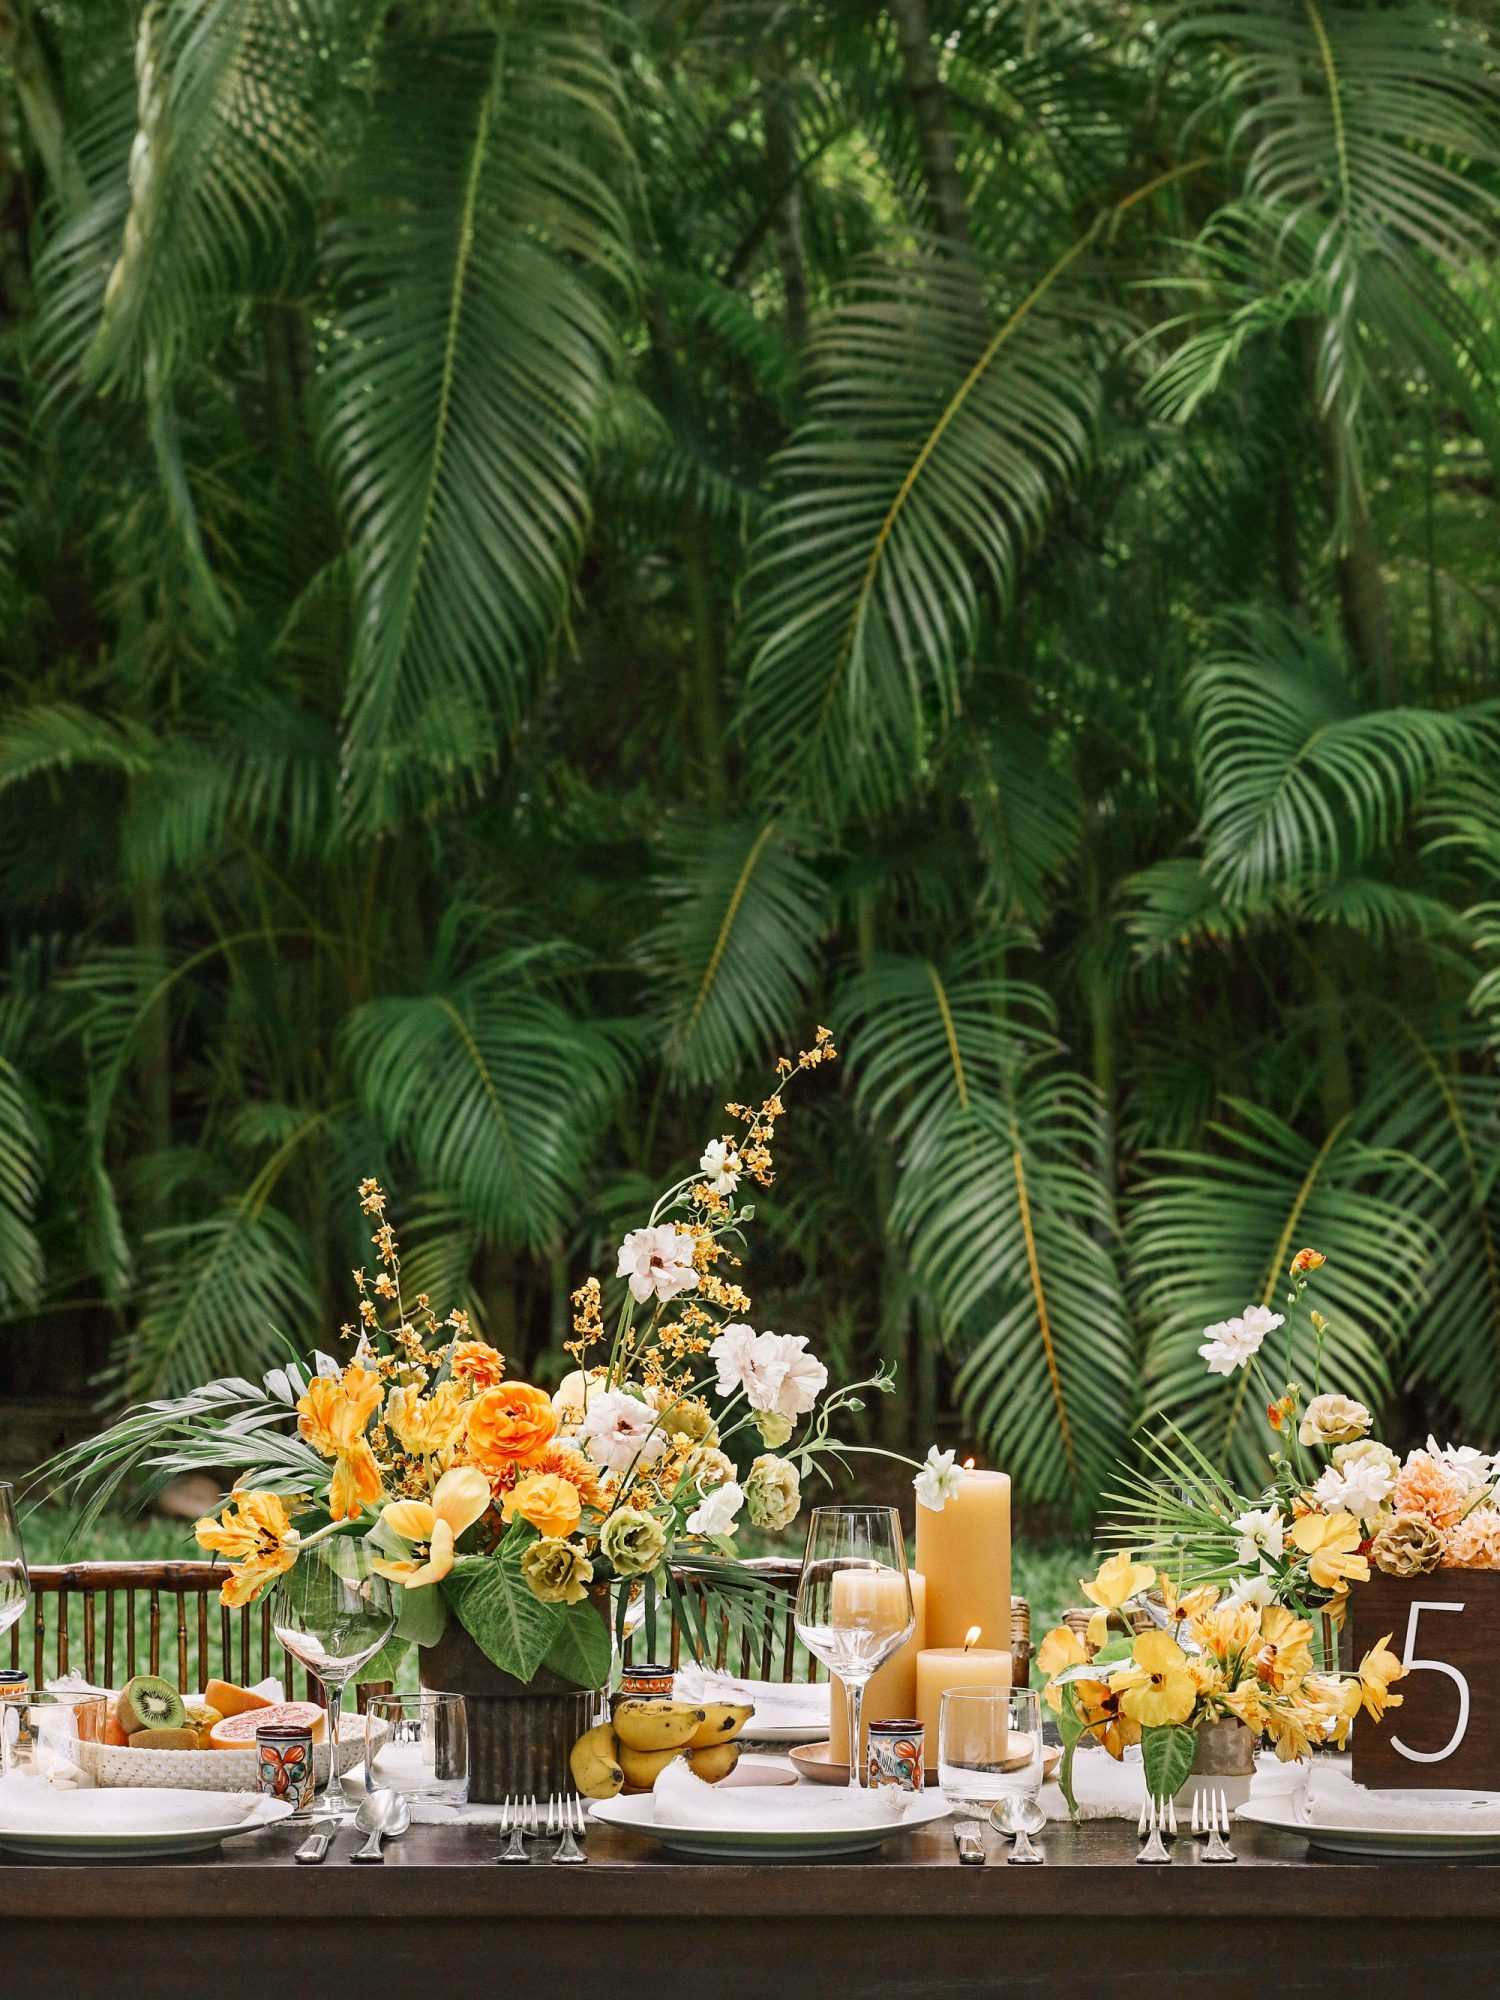 A Lush Tablescape